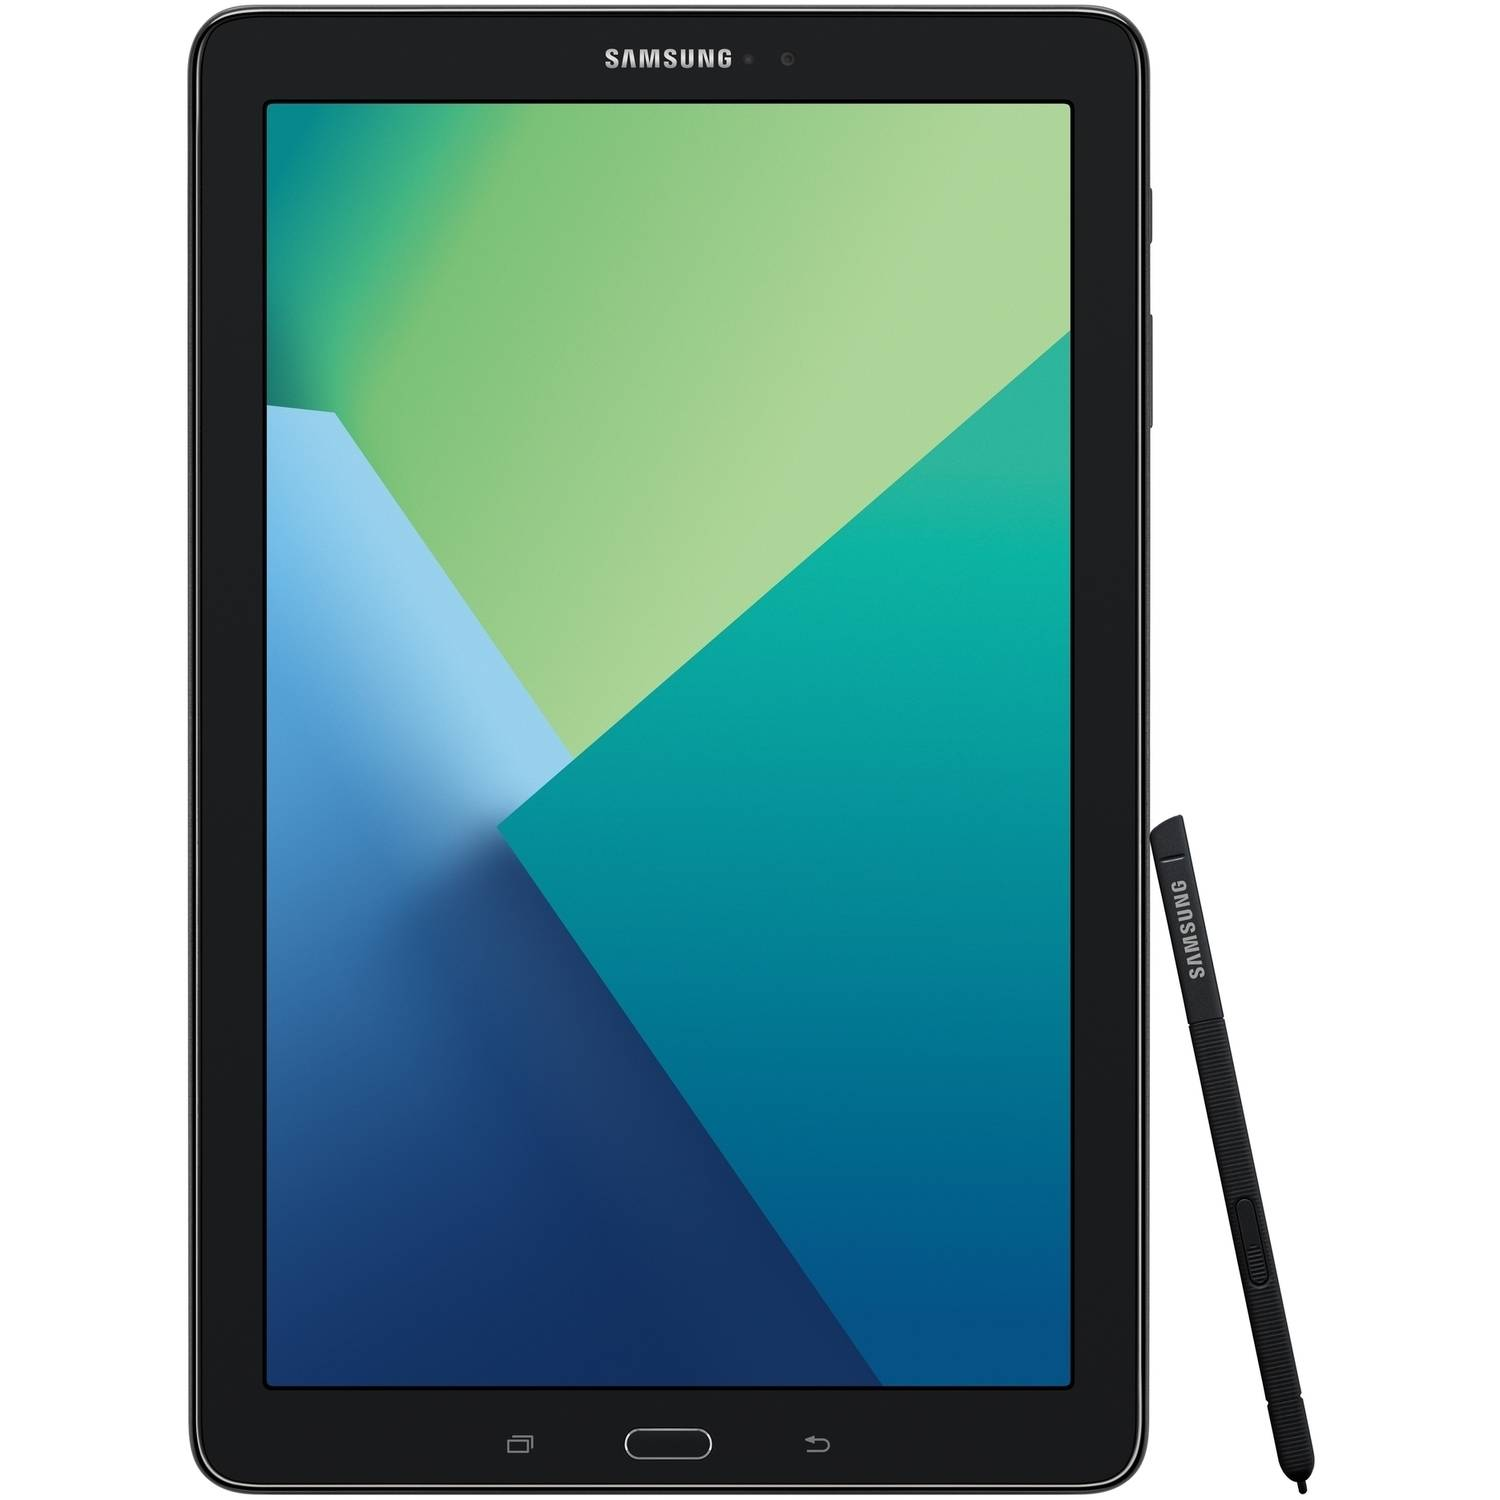 SAMSUNG Galaxy Tab A 10.1 16GB Android 6.0 WiFi Tablet Black - S Pen - Micro SD Card Slot - SM-P580NZKAXAR